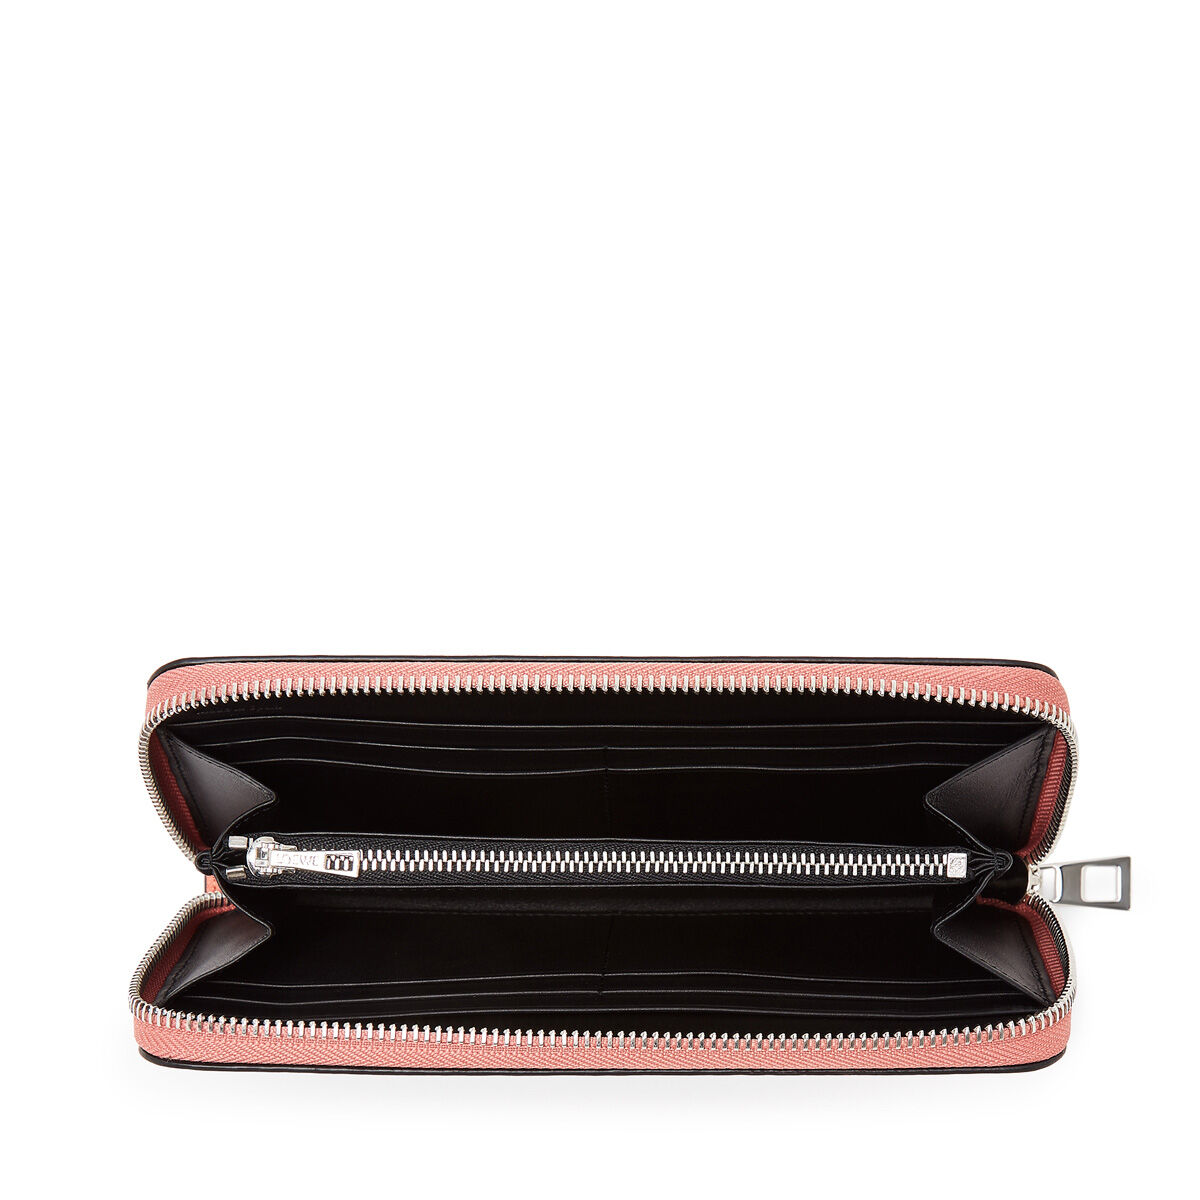 LOEWE Zip Around Wallet Pink Tulip/Black all